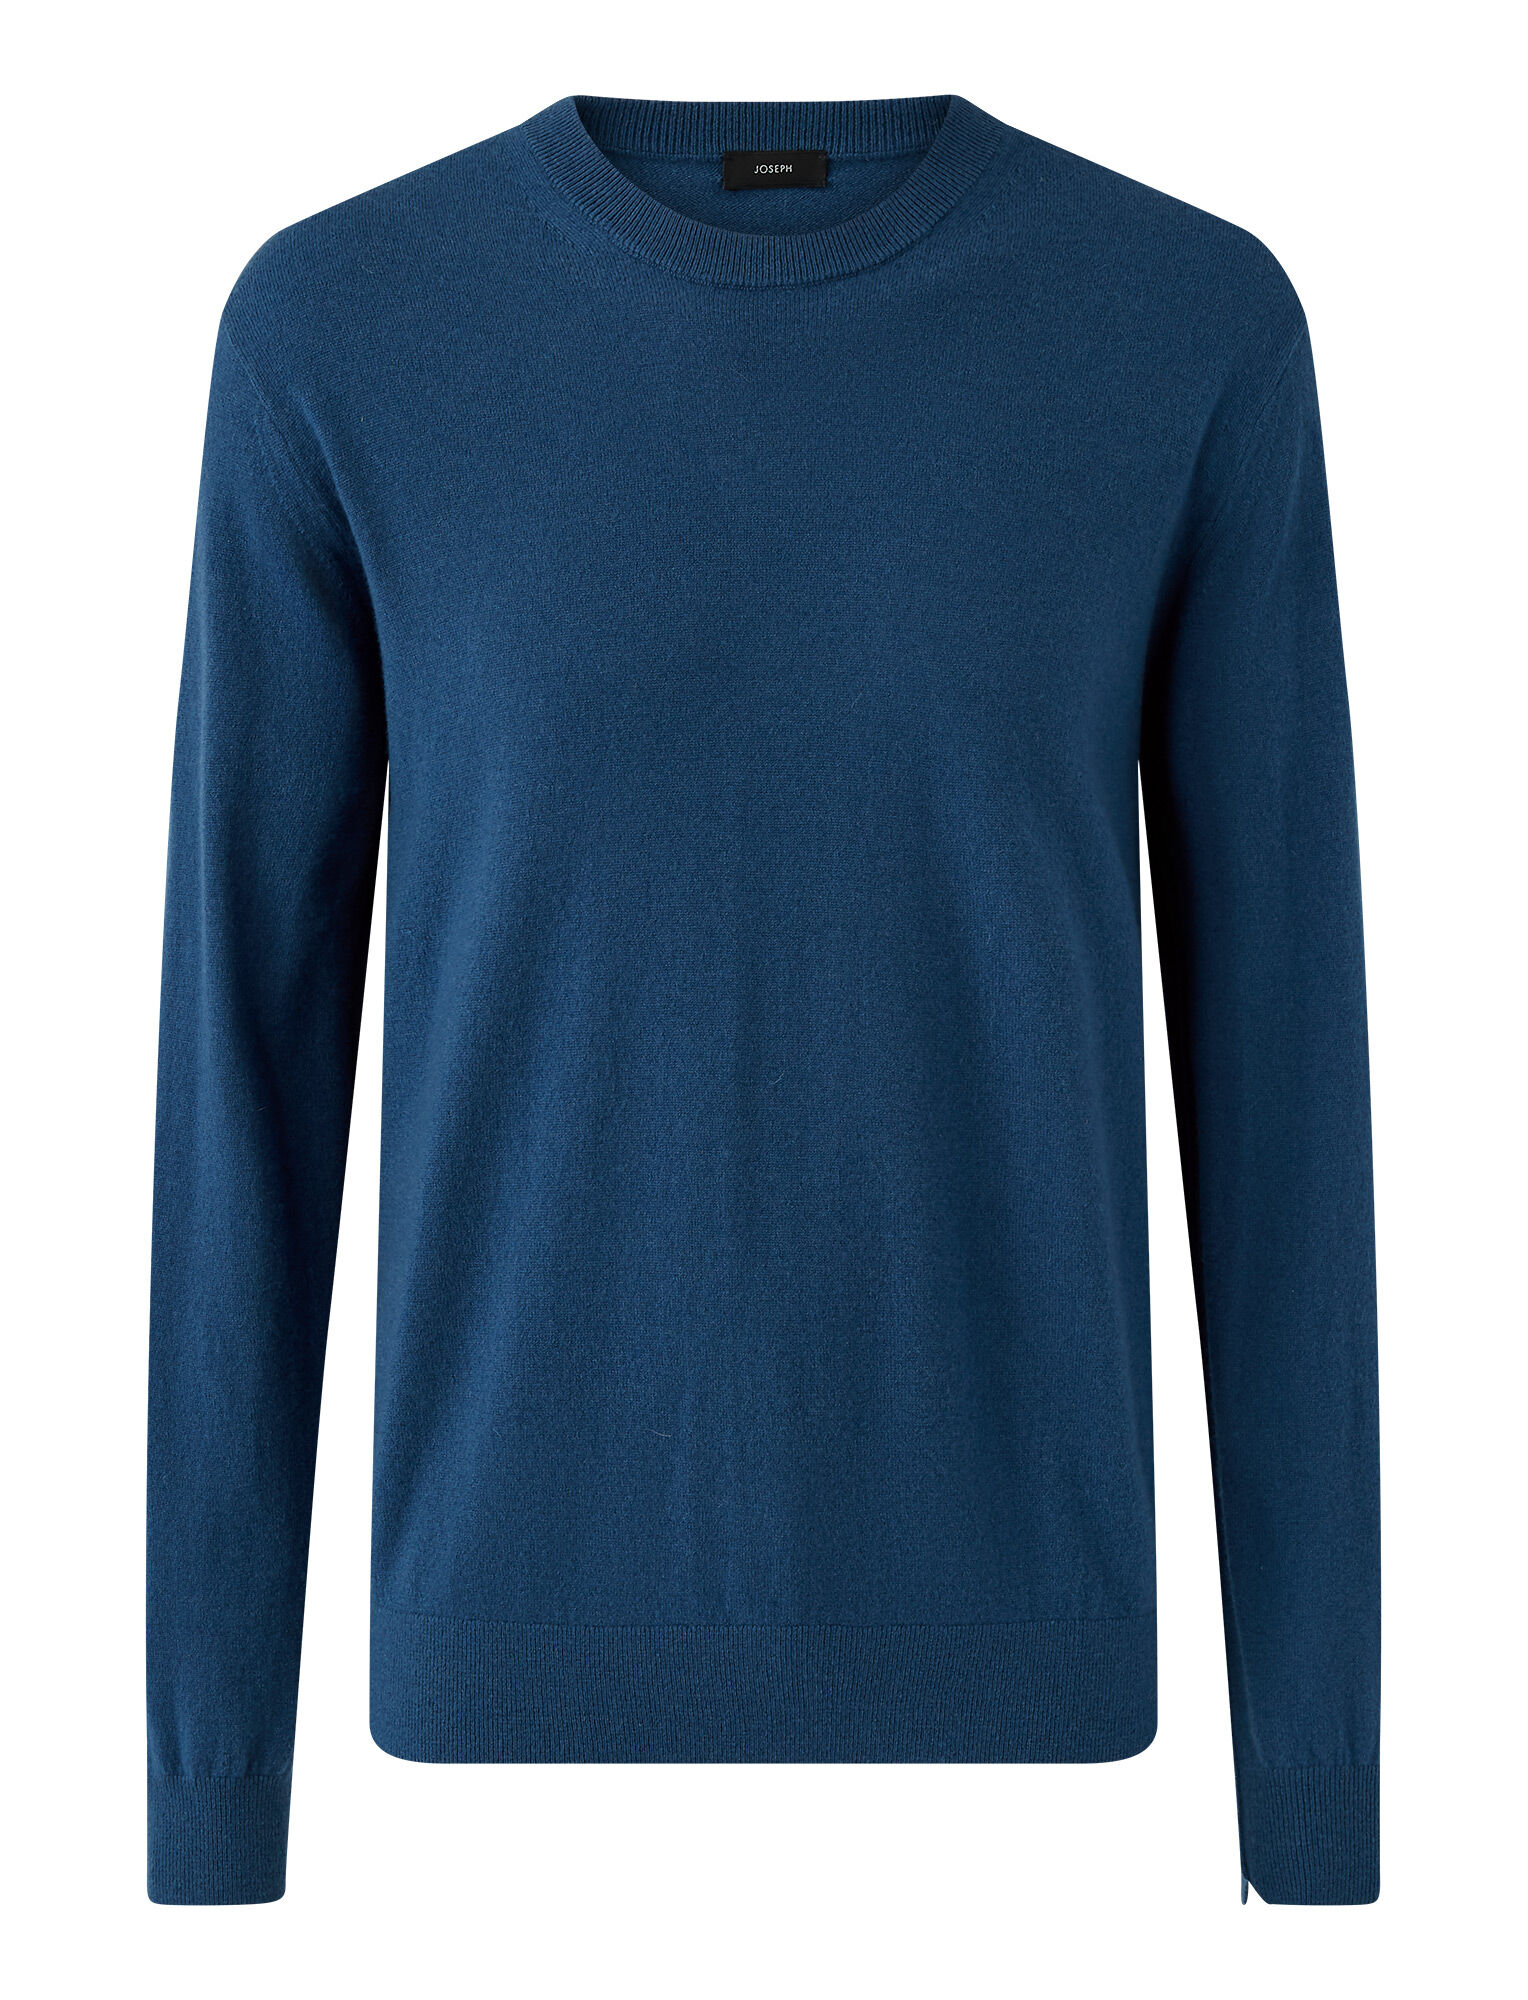 Joseph, Cashmere Knit, in Blue